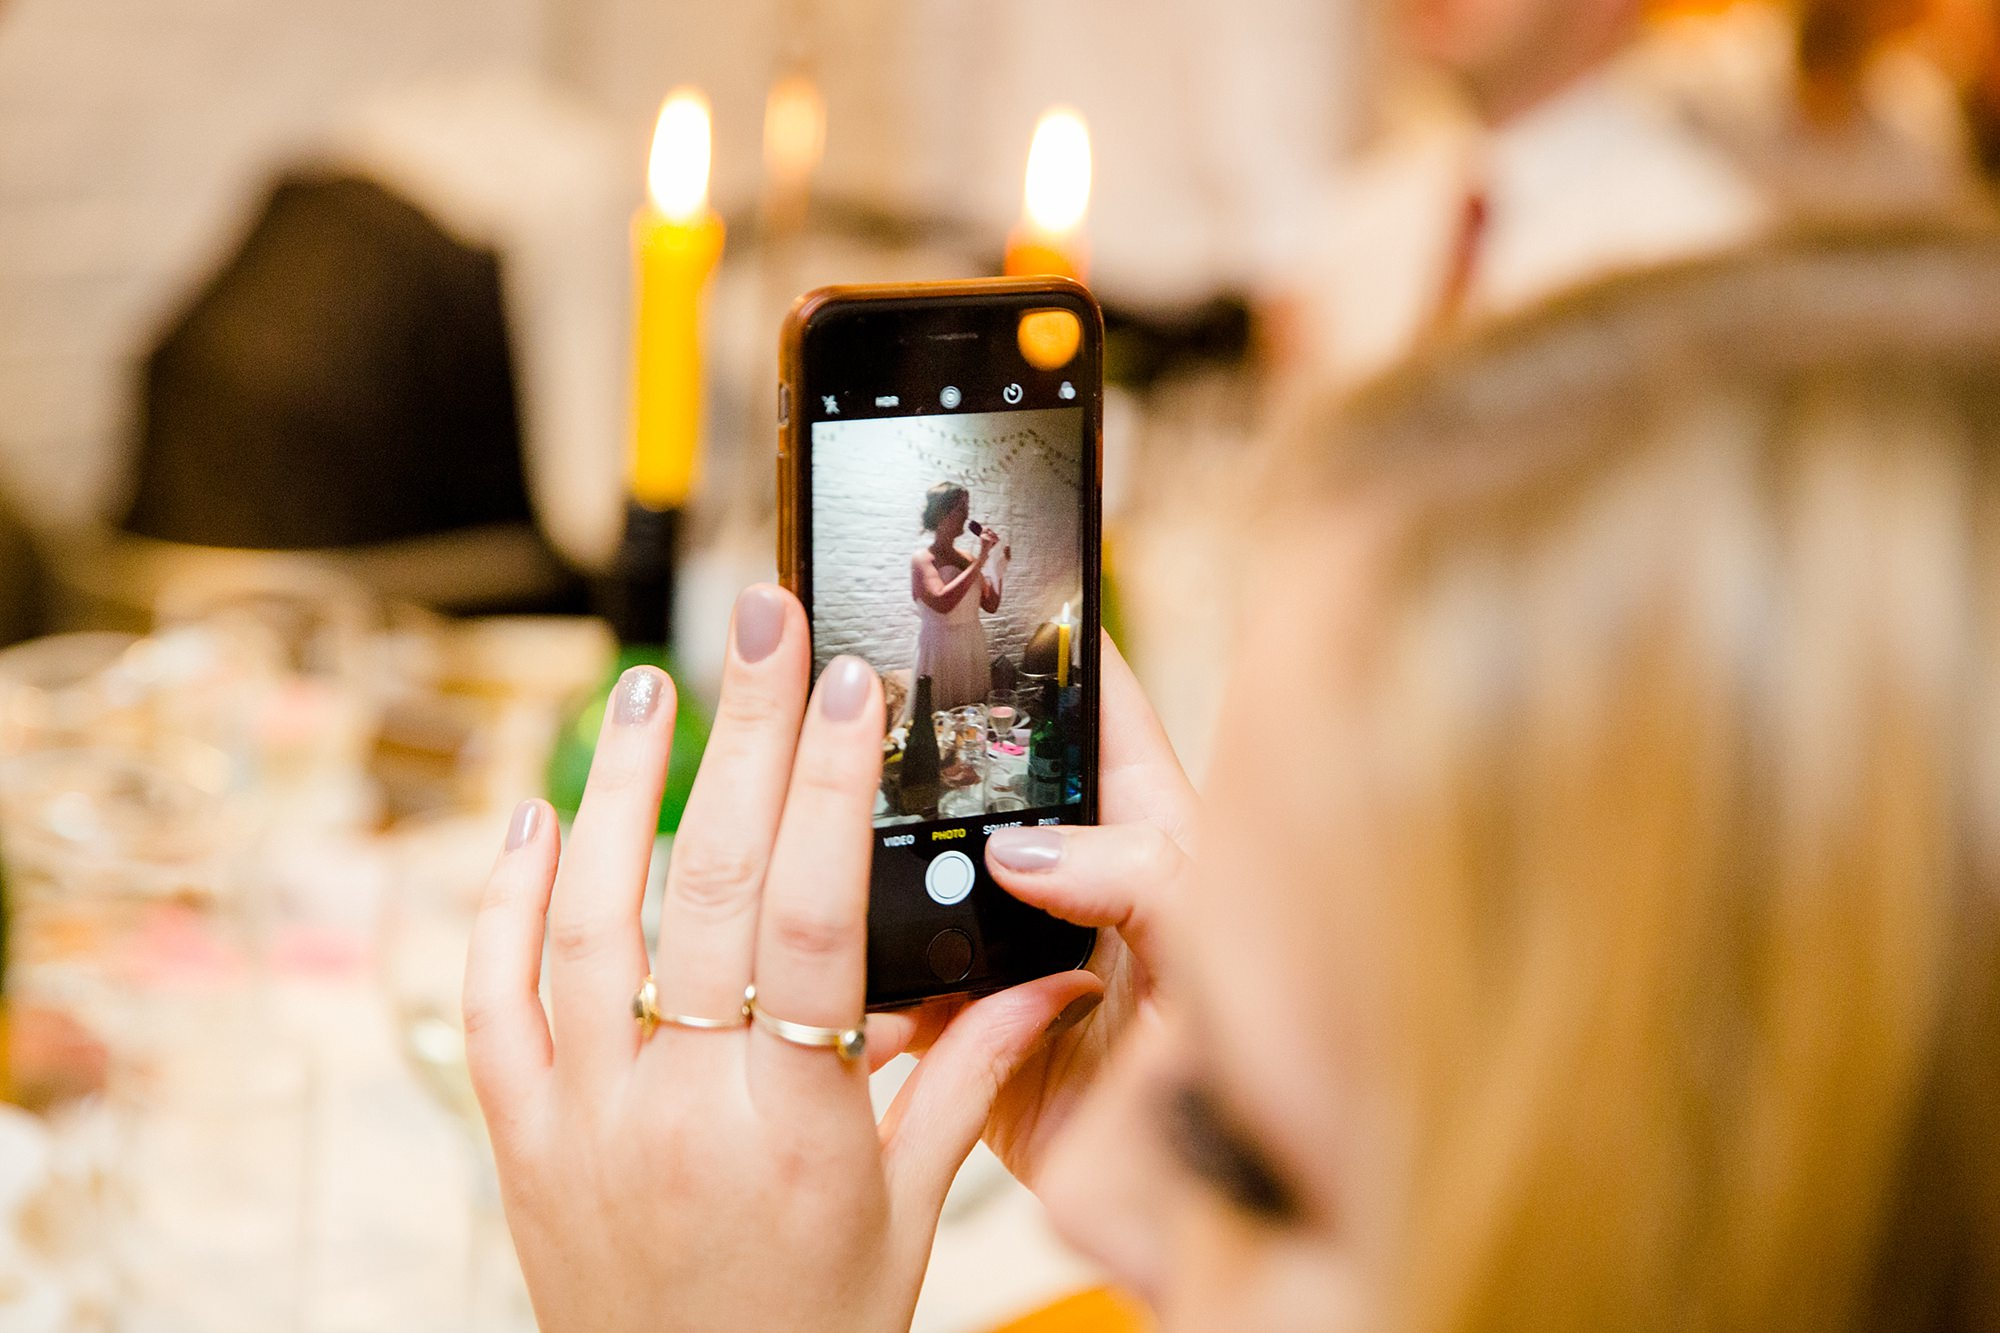 Fun London Wedding guest takes a picture of bride giving speech on her phone